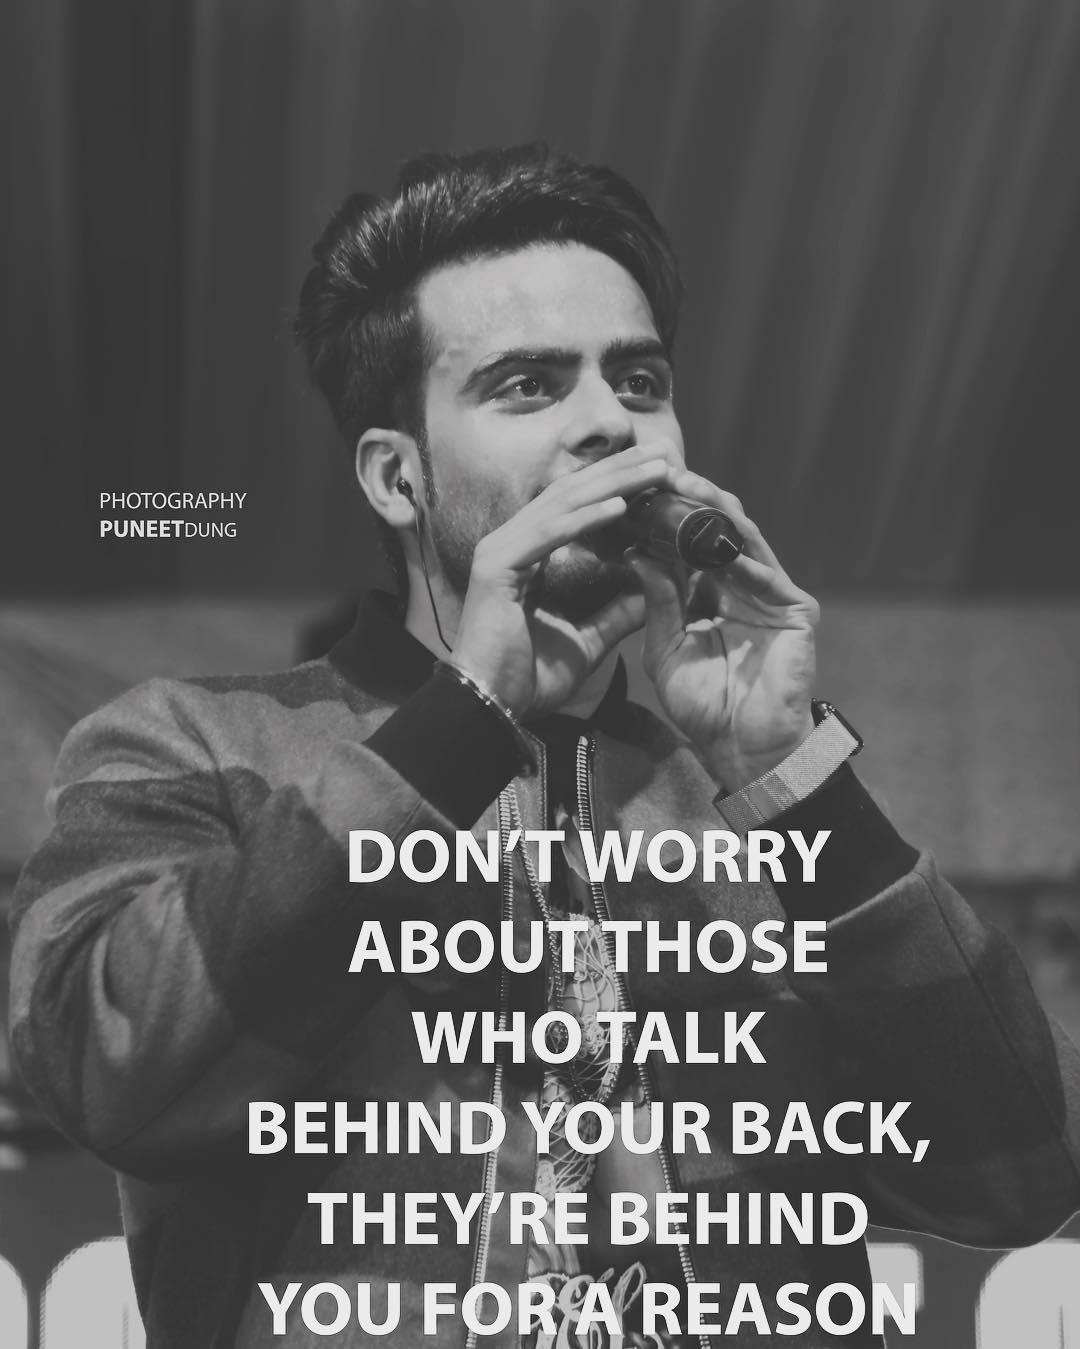 Mankirt Aulakh Hd Wallpapers, Images, pics